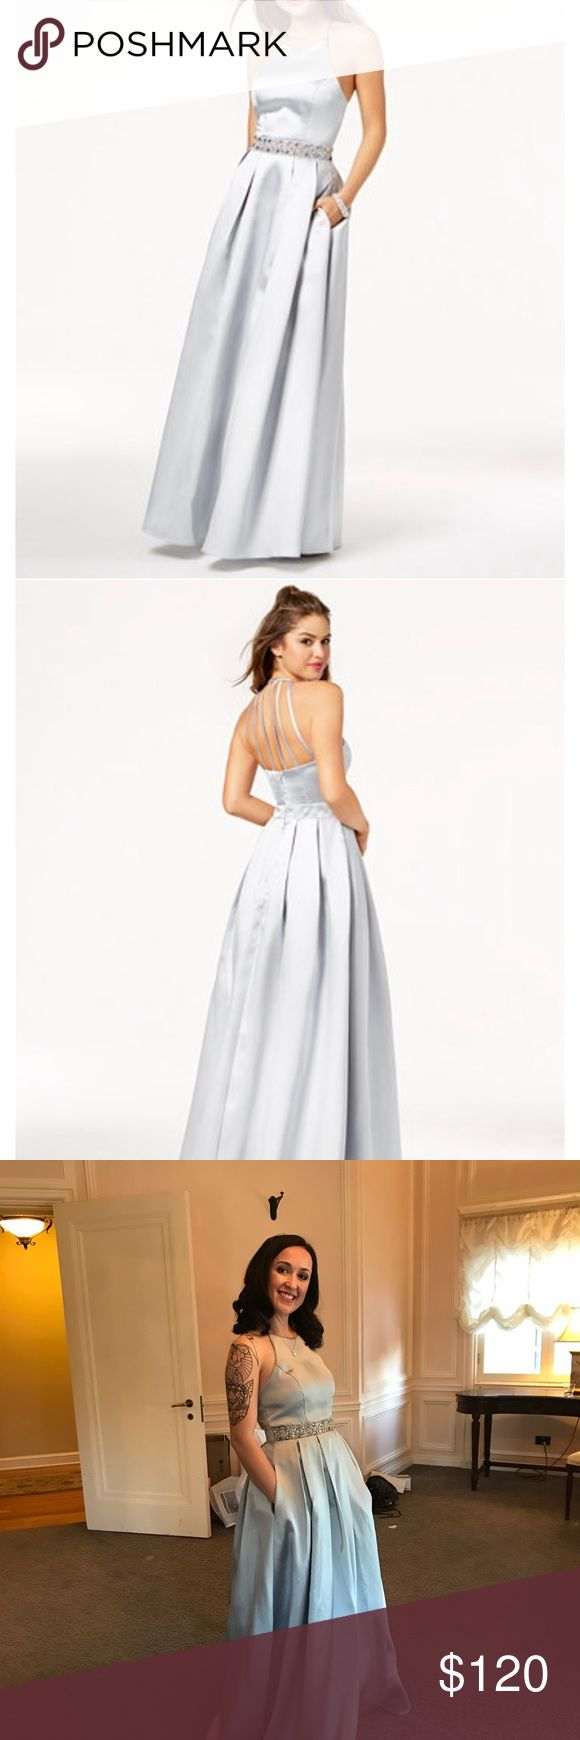 "Satin silver, embellished gown. Like new! Wore for maid of honor dress. It has no alterations and is very long! I'm 5'2"" and my 6"" heels didn't cut it! Fits great and has POCKETS!!! Love this dress so much! Find details on Macy's website. Dresses Prom"